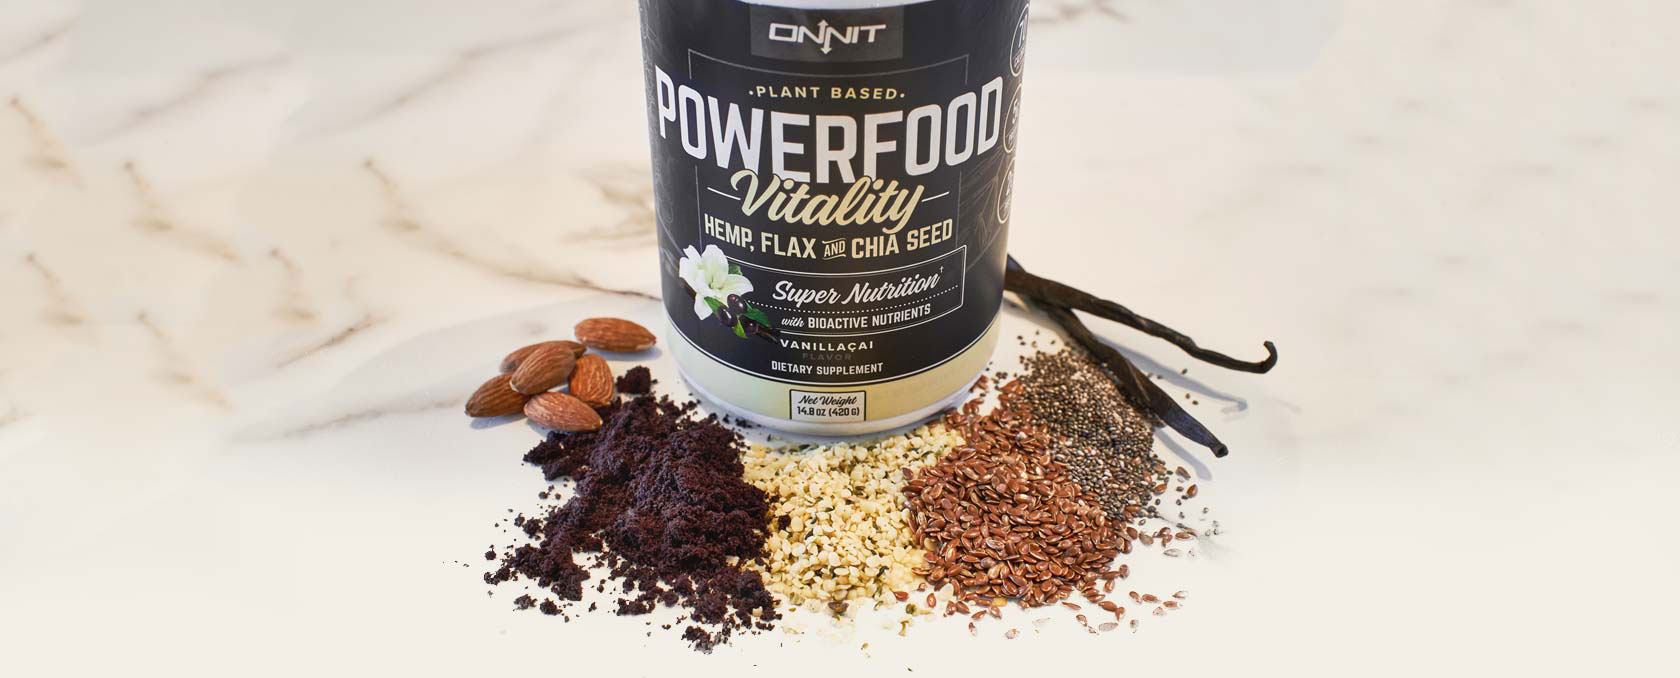 Onnit Powerfood Vitality Recipes